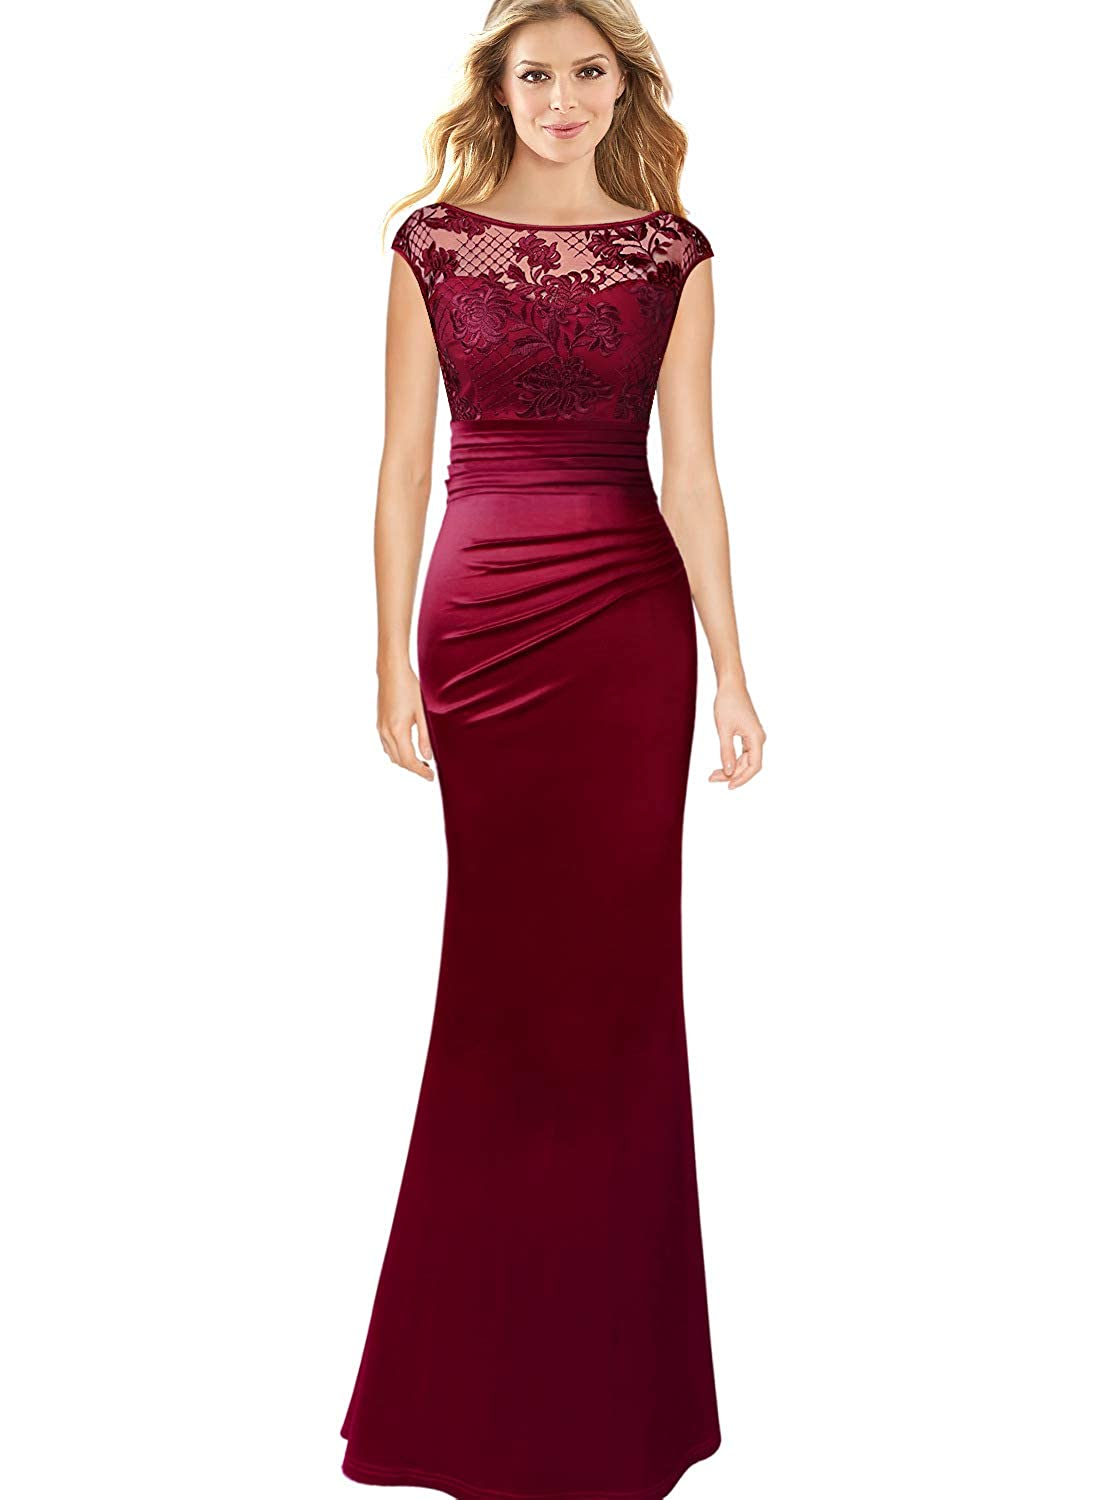 Dark Red Embroidery VFSHOW Womens Floral Lace Ruched Formal Prom Evening Mermaid Maxi Dress